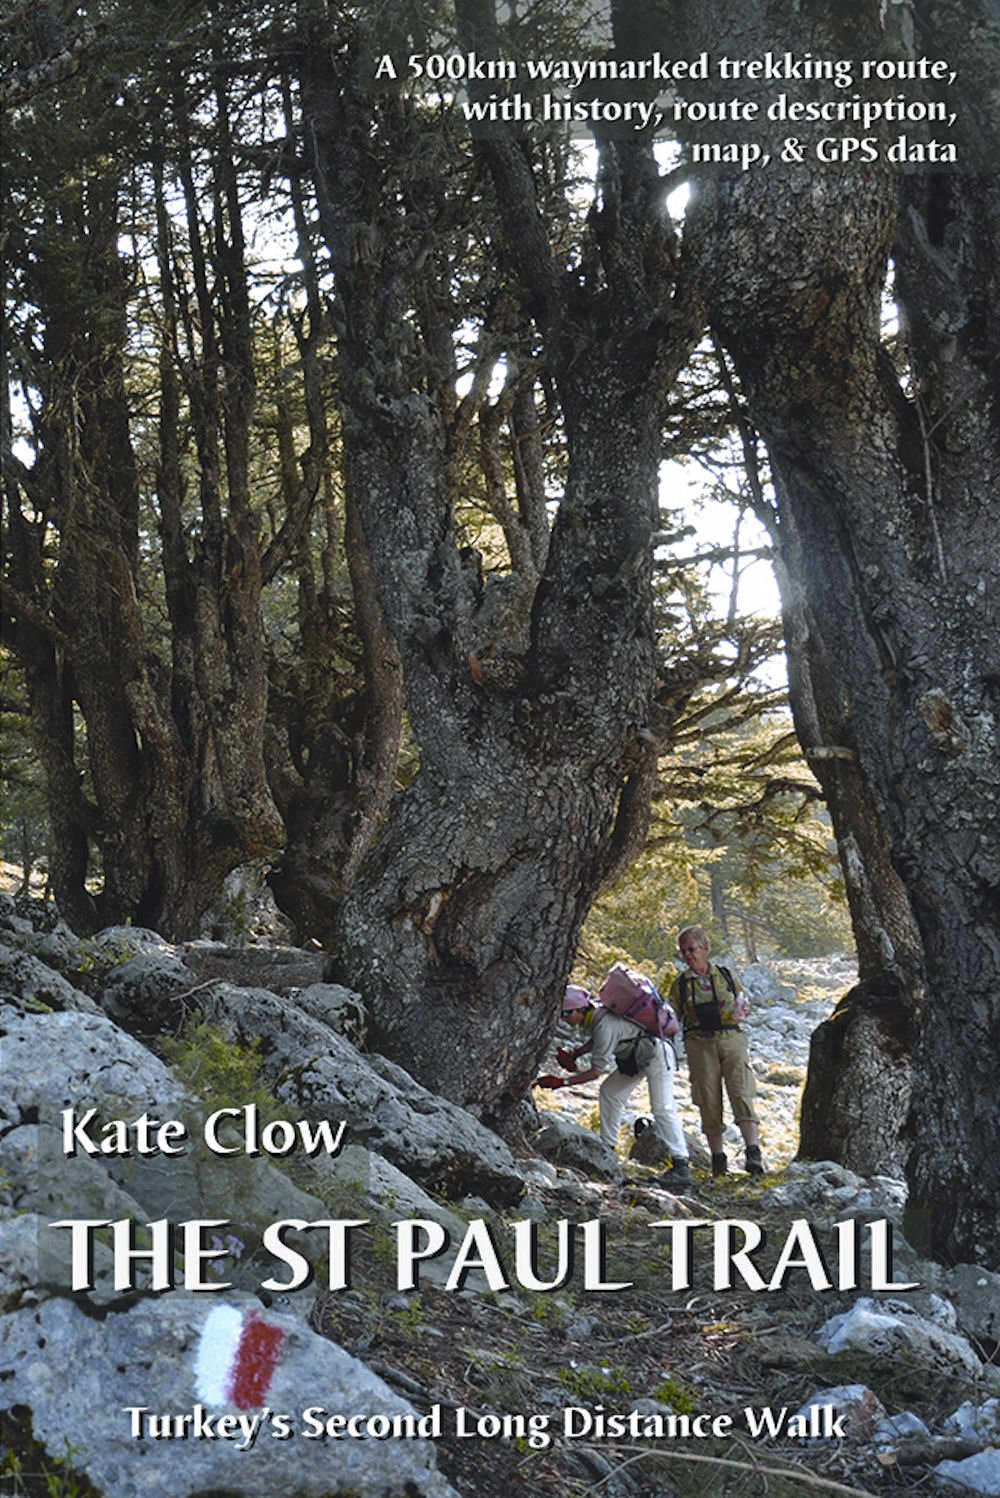 The St Paul Trail: Turkey's second long distance walk